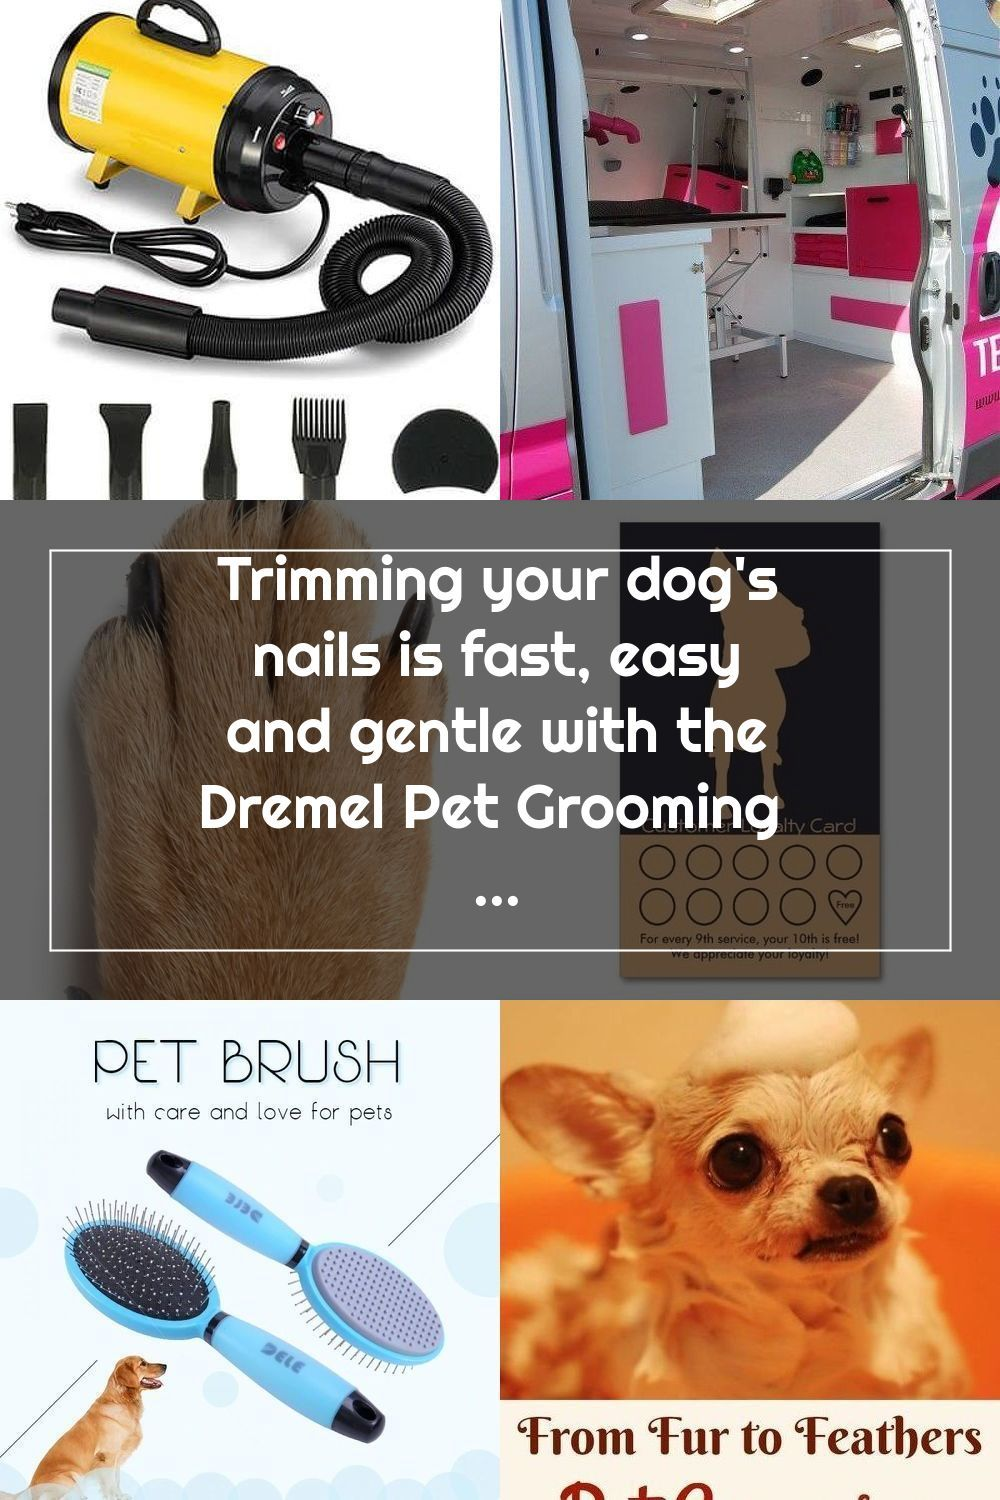 Trimming your dog's nails is fast, easy and gentle with